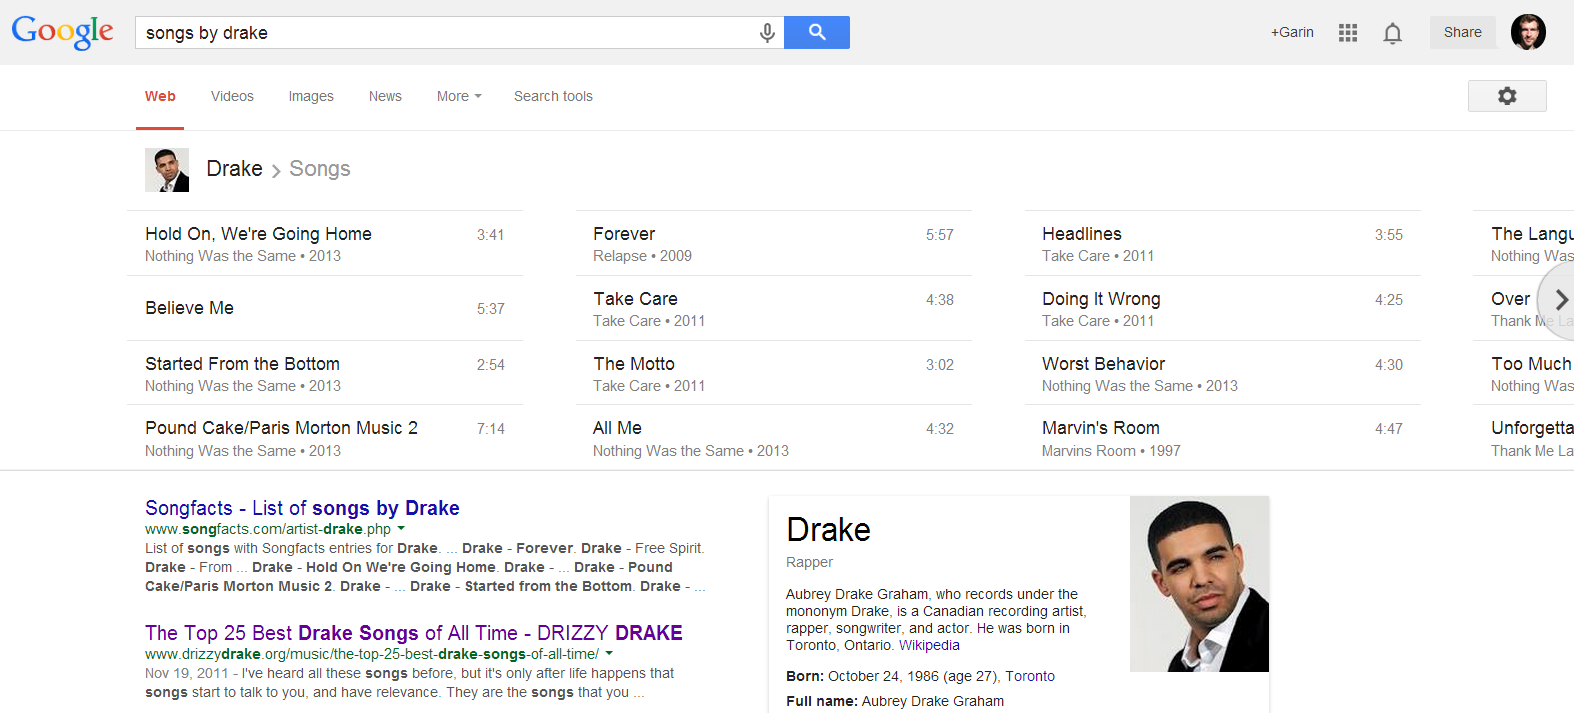 Google-a-list-of-songs-by-an-artist